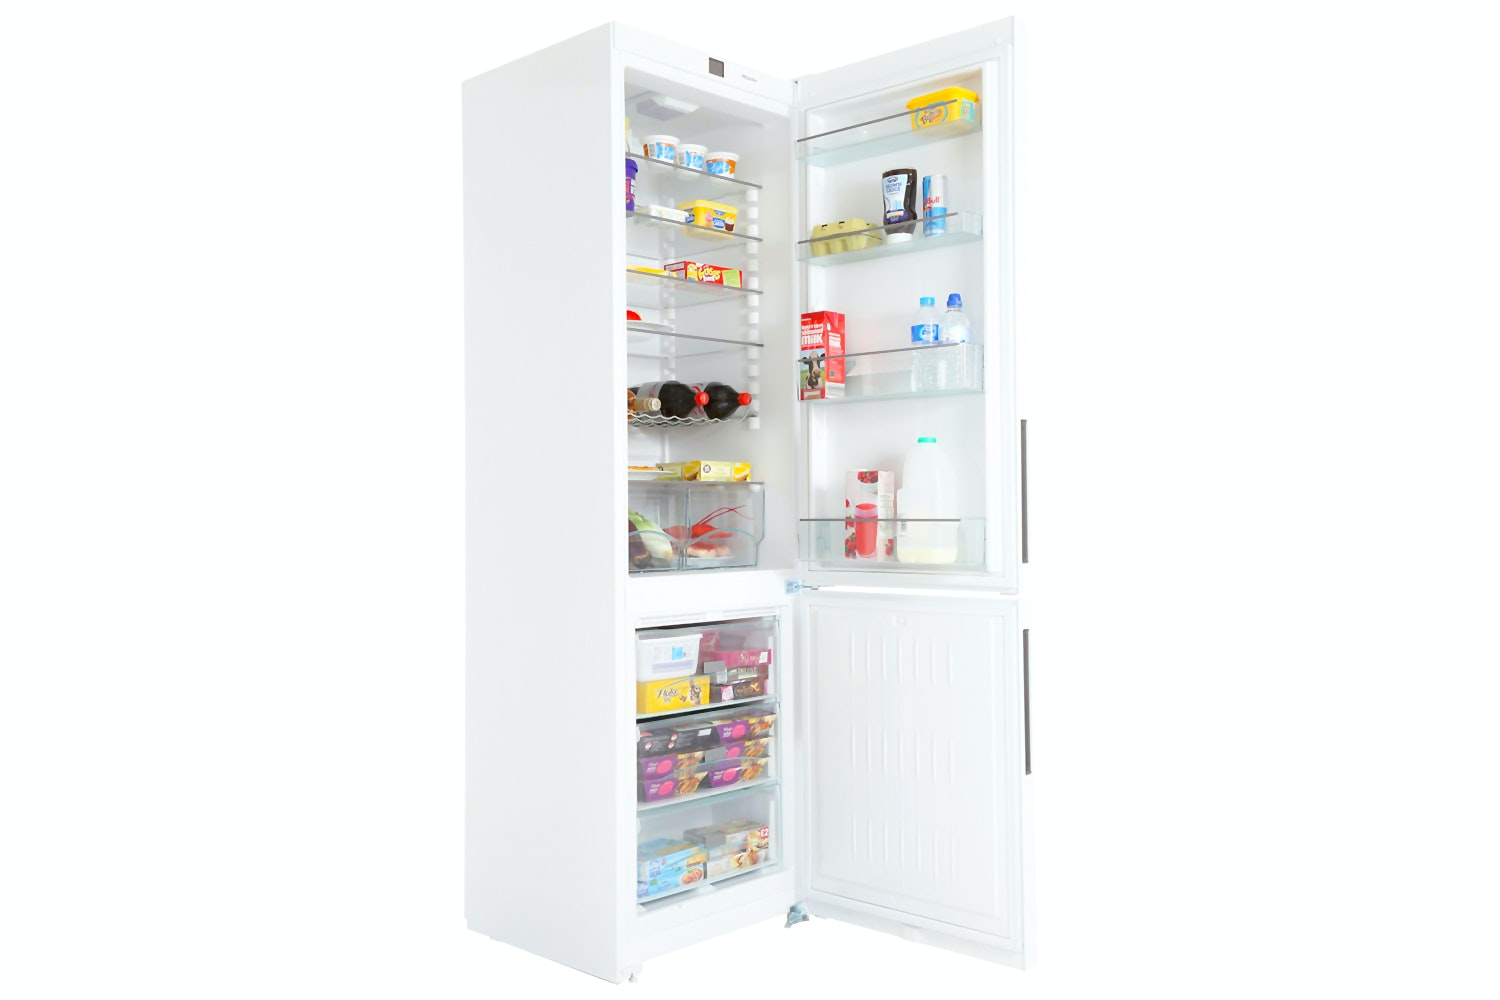 Miele KFN 29032 D  Freestanding fridge-freezer   with Frost free and Dynamic cooling for highest convenience and versatility